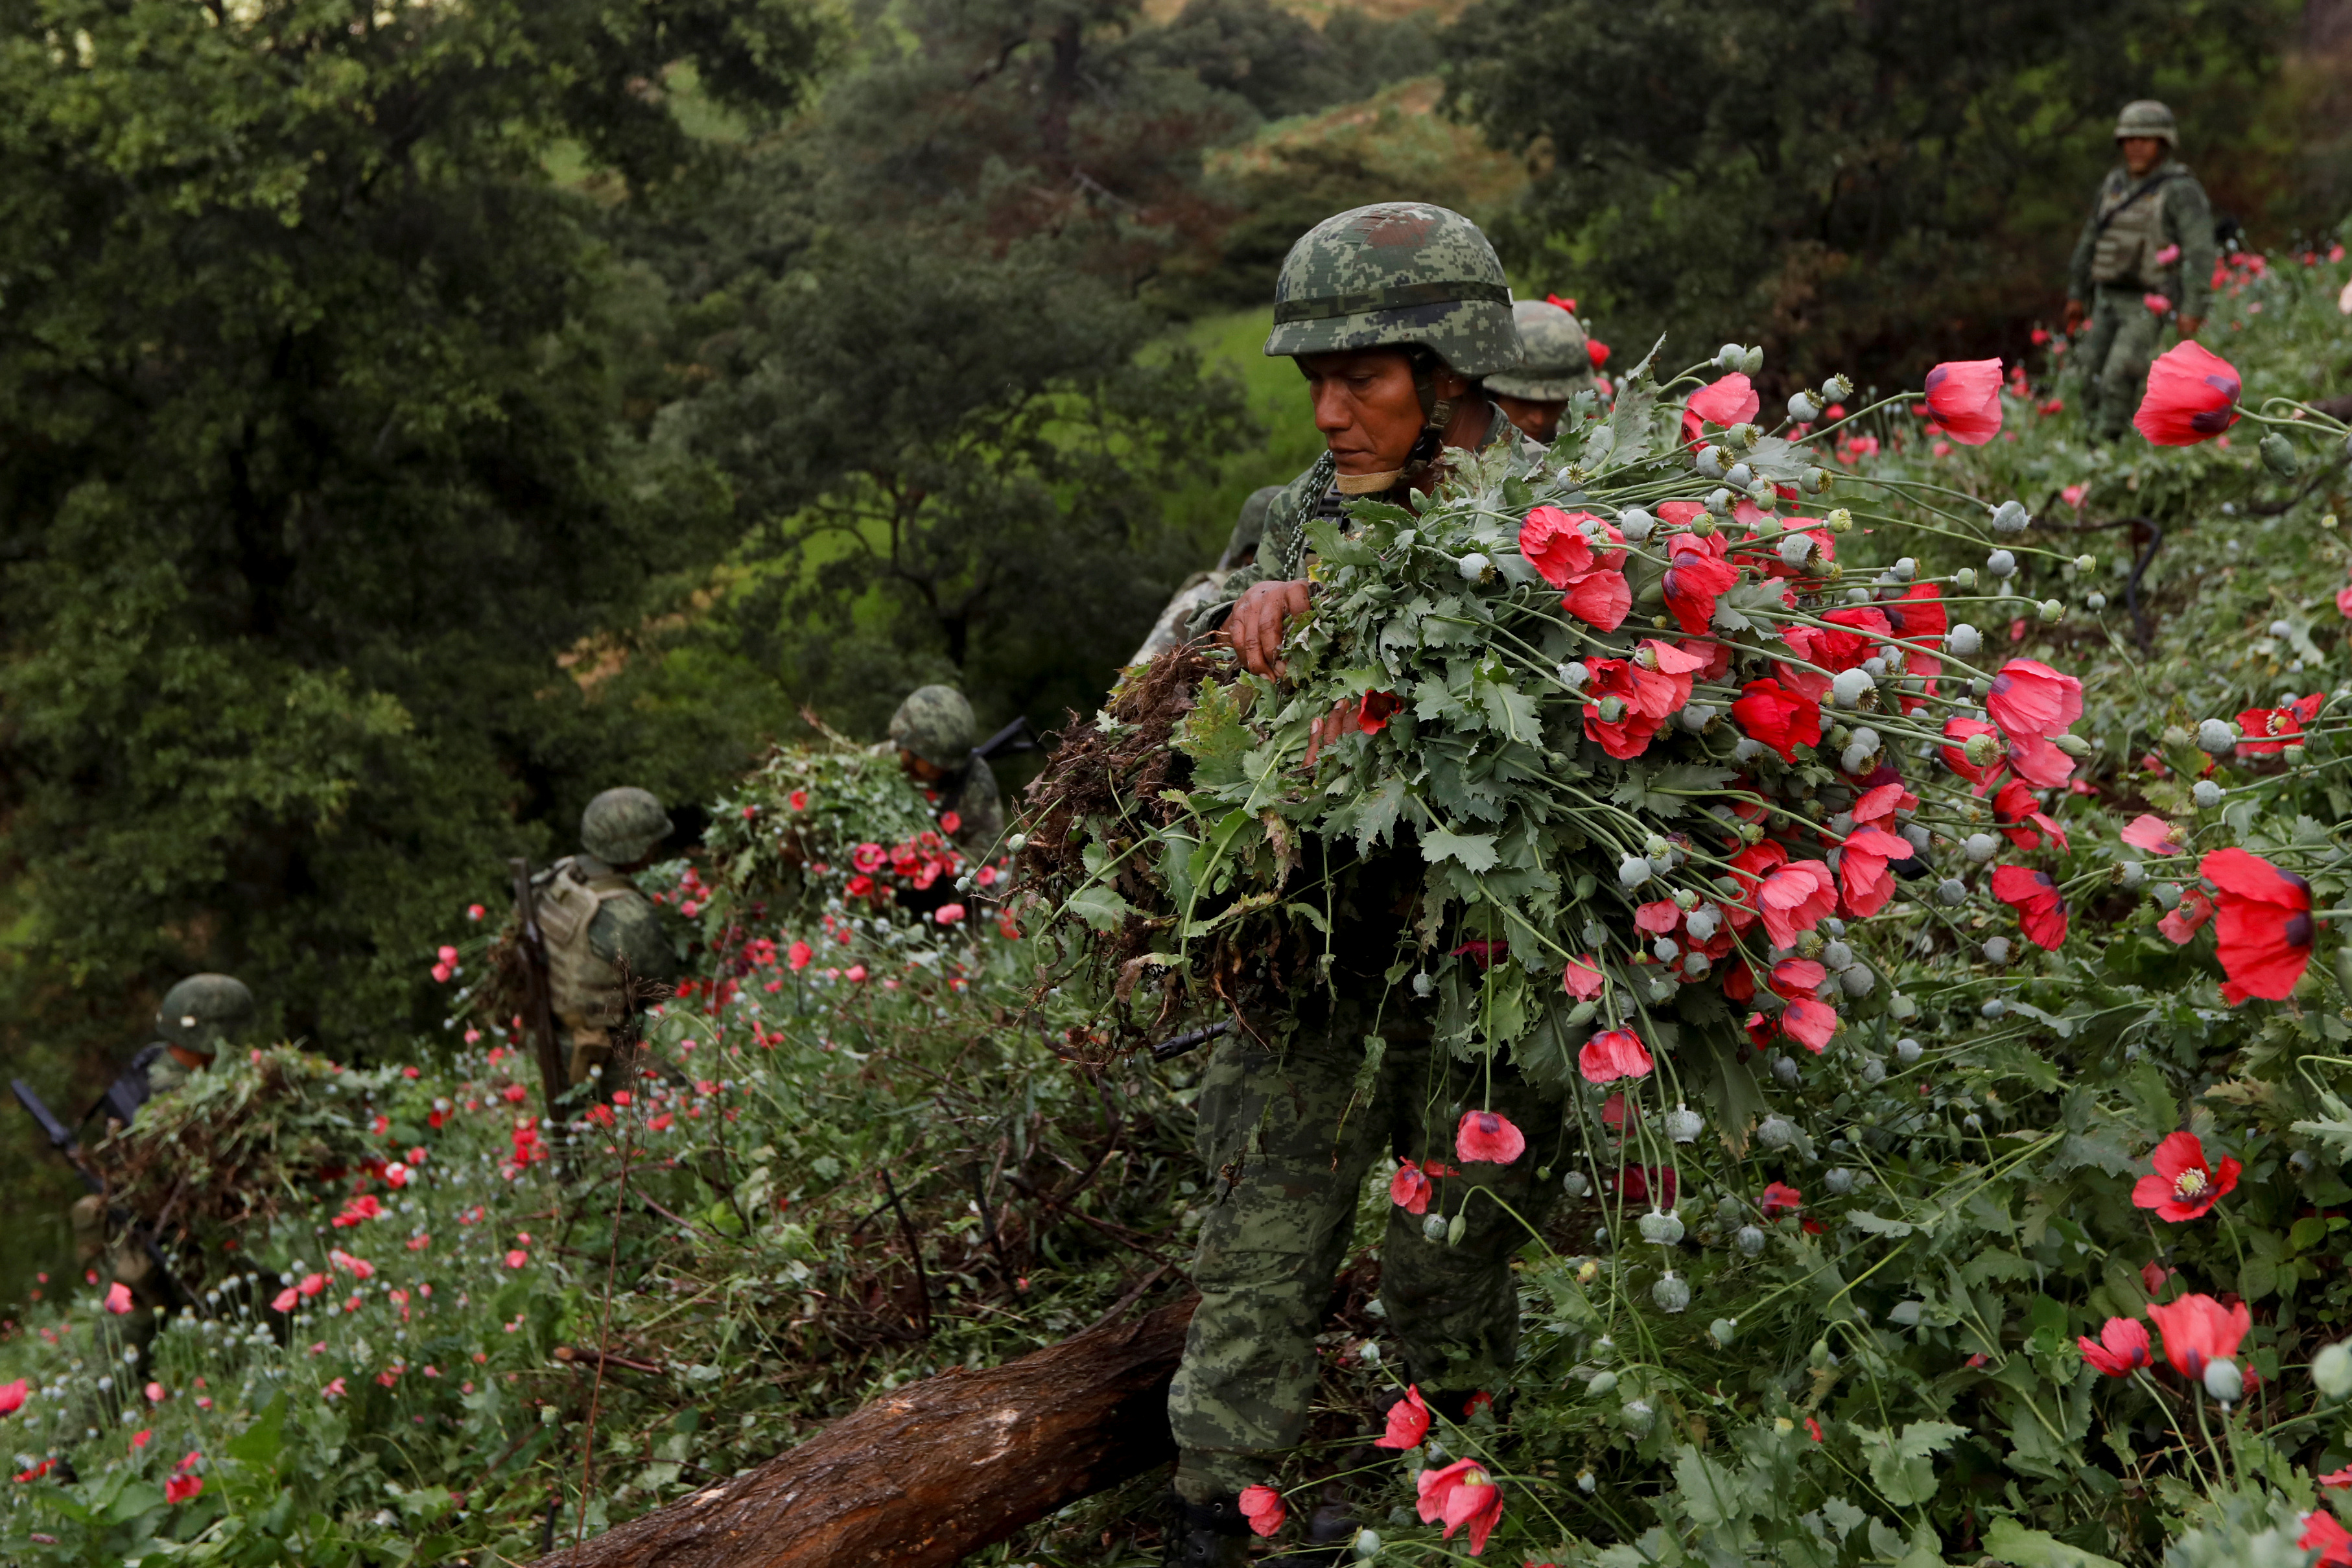 U S -Mexican security cooperation: The opportunities and challenges